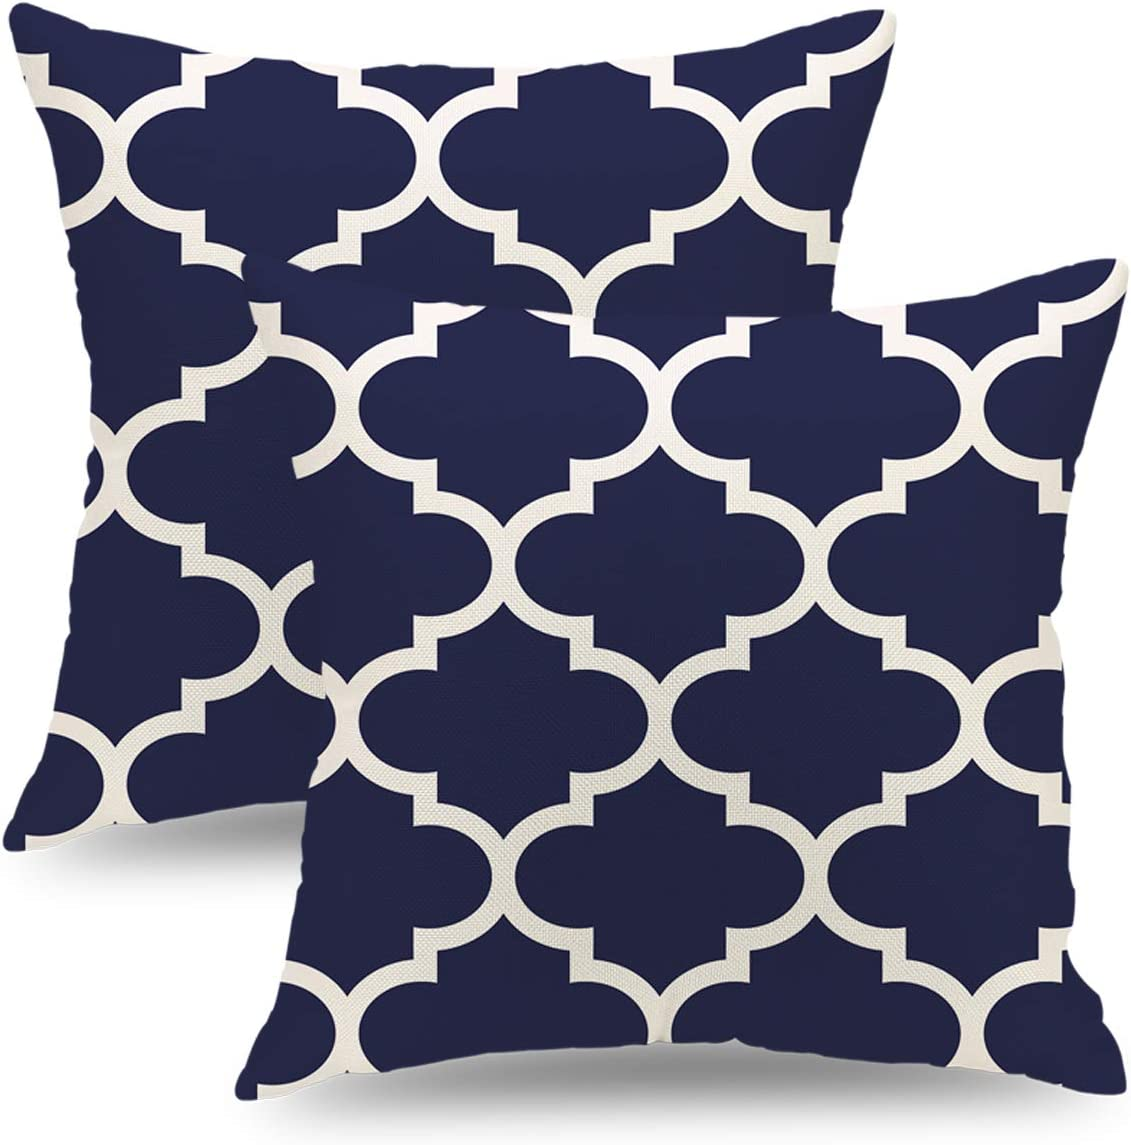 QIQIANY Set of 2 Outdoor Pillow Covers 18 x 18 Inch Navy Blue Decorative Modern Farmhouse Throw Pillow Covers Square Pillow Covers Cushion Case Home Decor for Living Room Patio Couch Chair